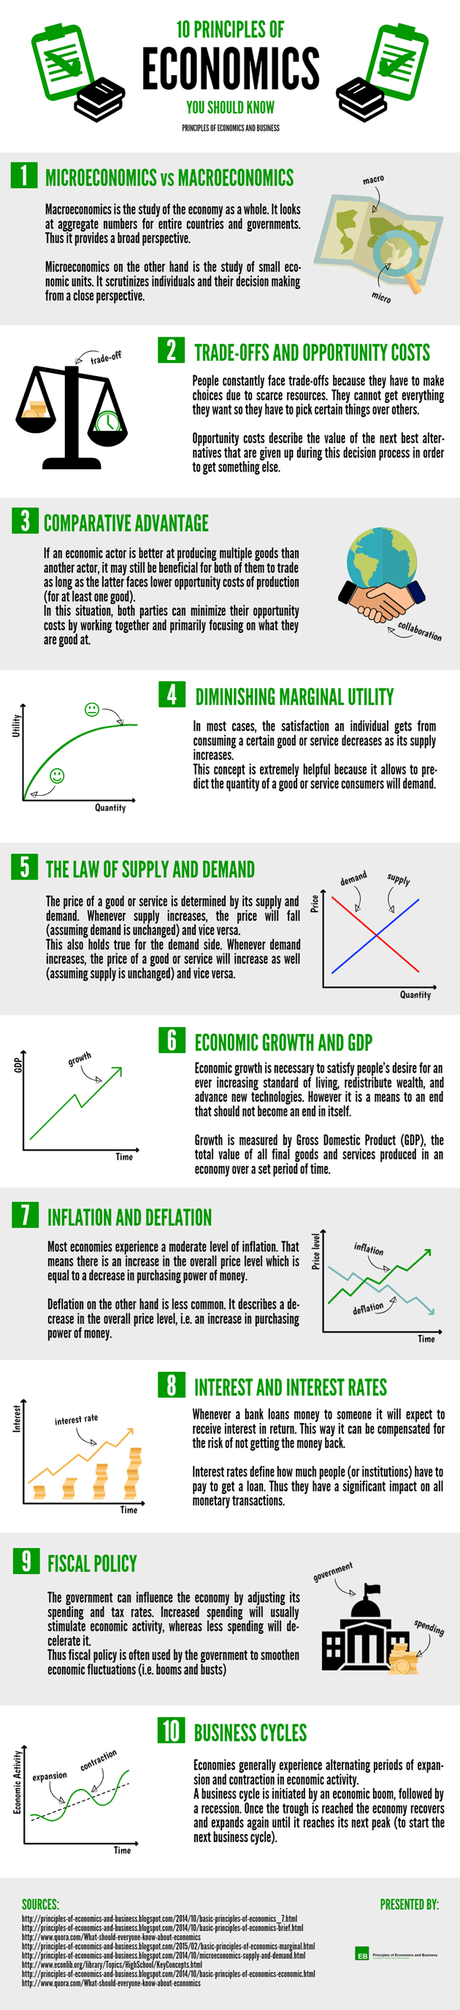 Infographic - 10 Principles of Economics You Should Know